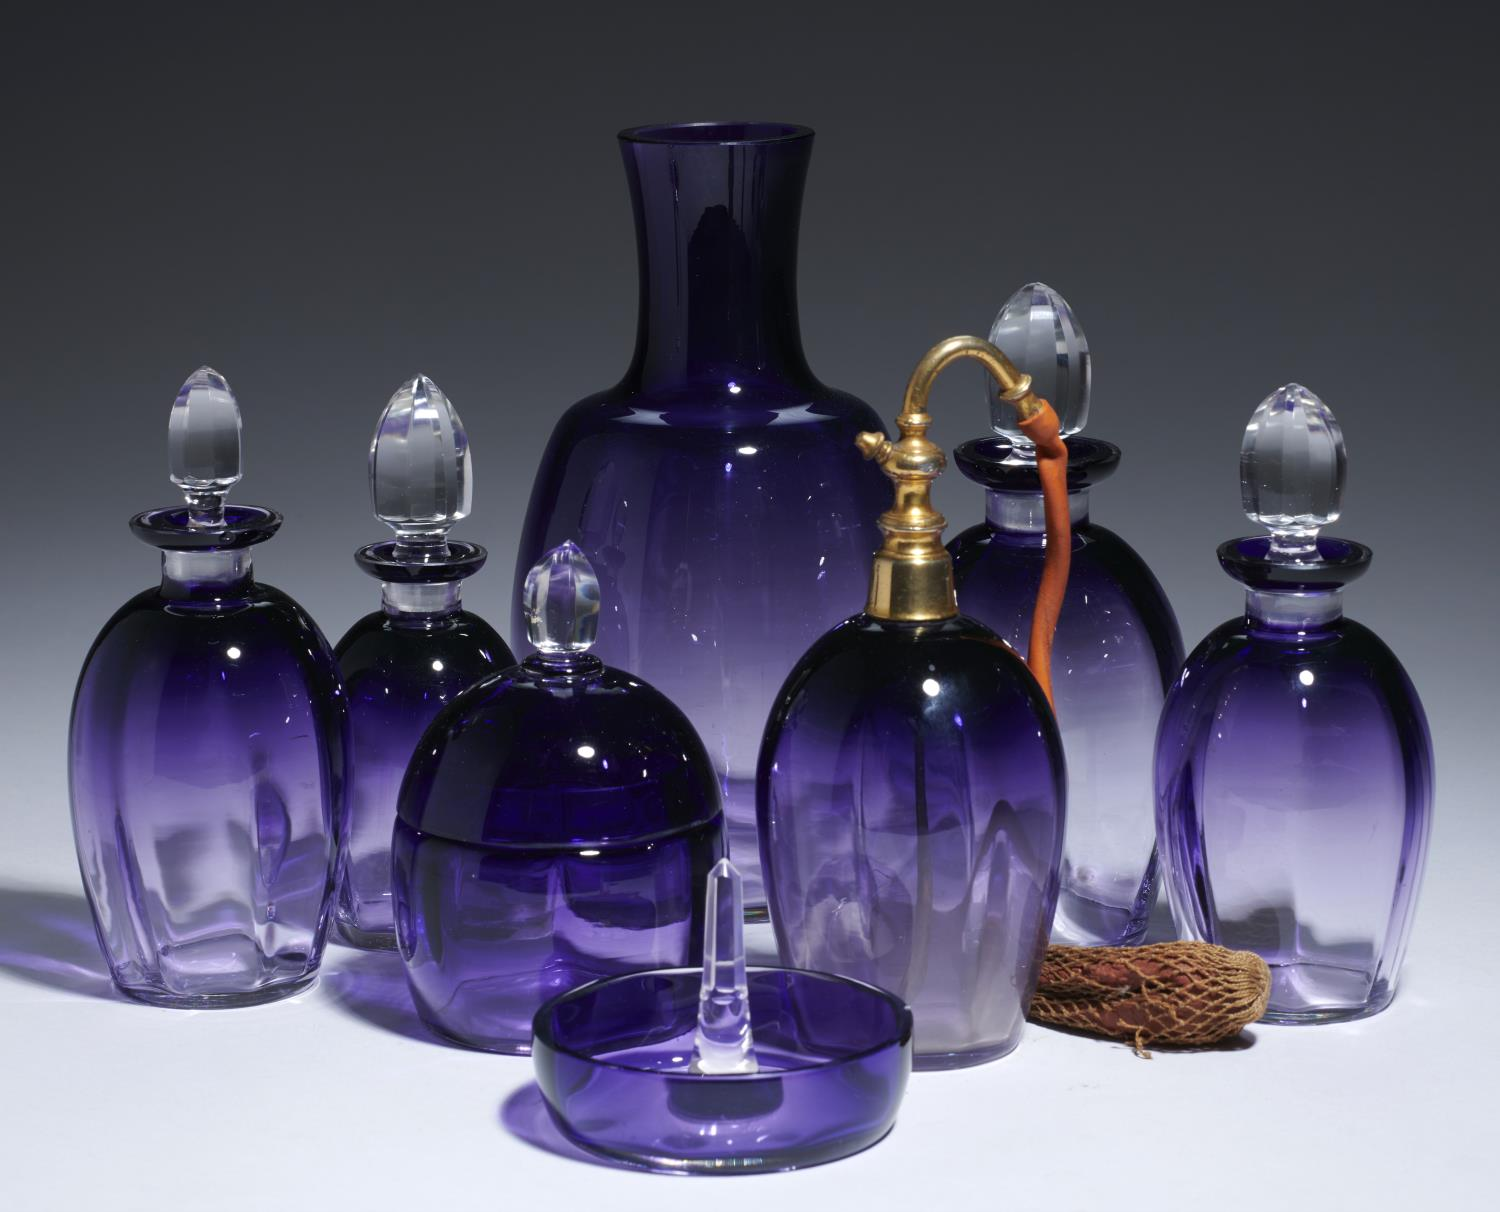 Lot 219 - A FRENCH AMETHYST GLASS DRESSING TABLE SET, C1930  including a scent bottle with giltmetal